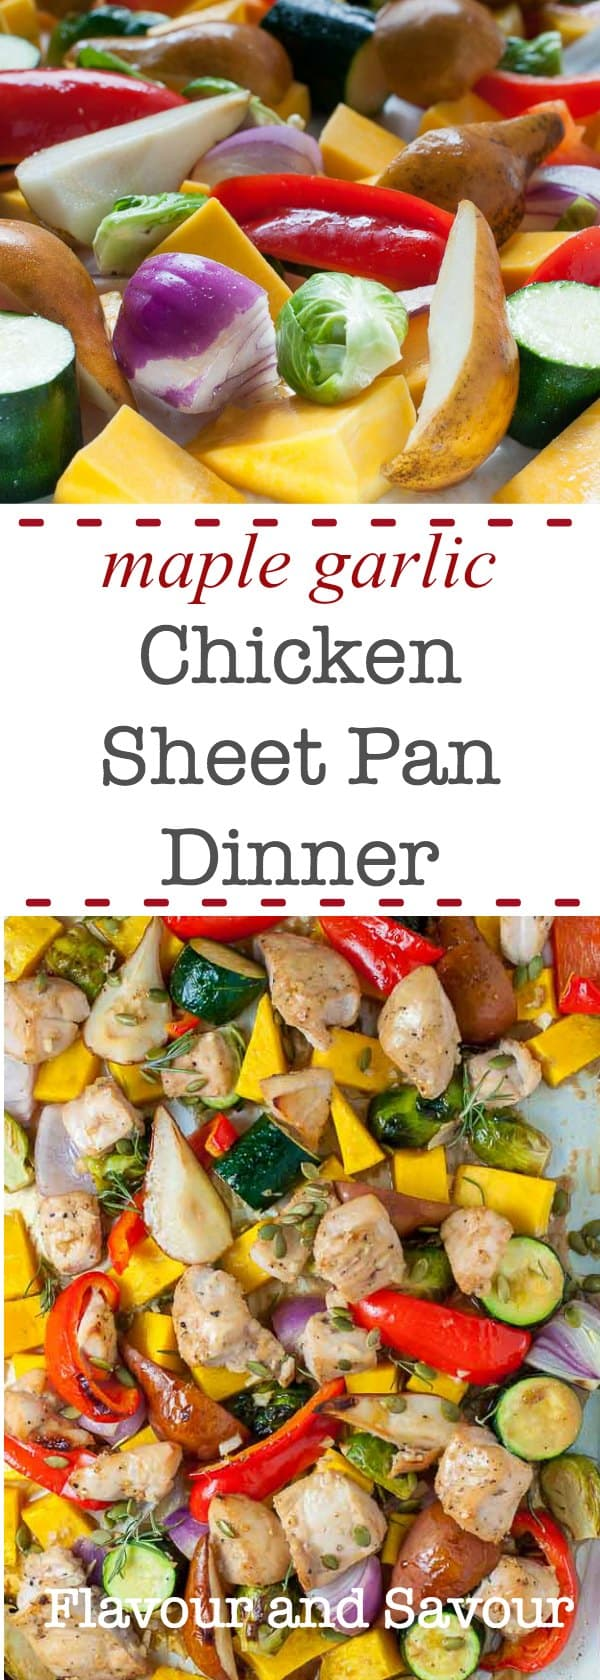 A family-friendly chicken sheet pan dinner that's paleo compliant too. Made with chicken breasts, butternut squash and seasonal vegetables, all on one pan. #sheetpan #paleo